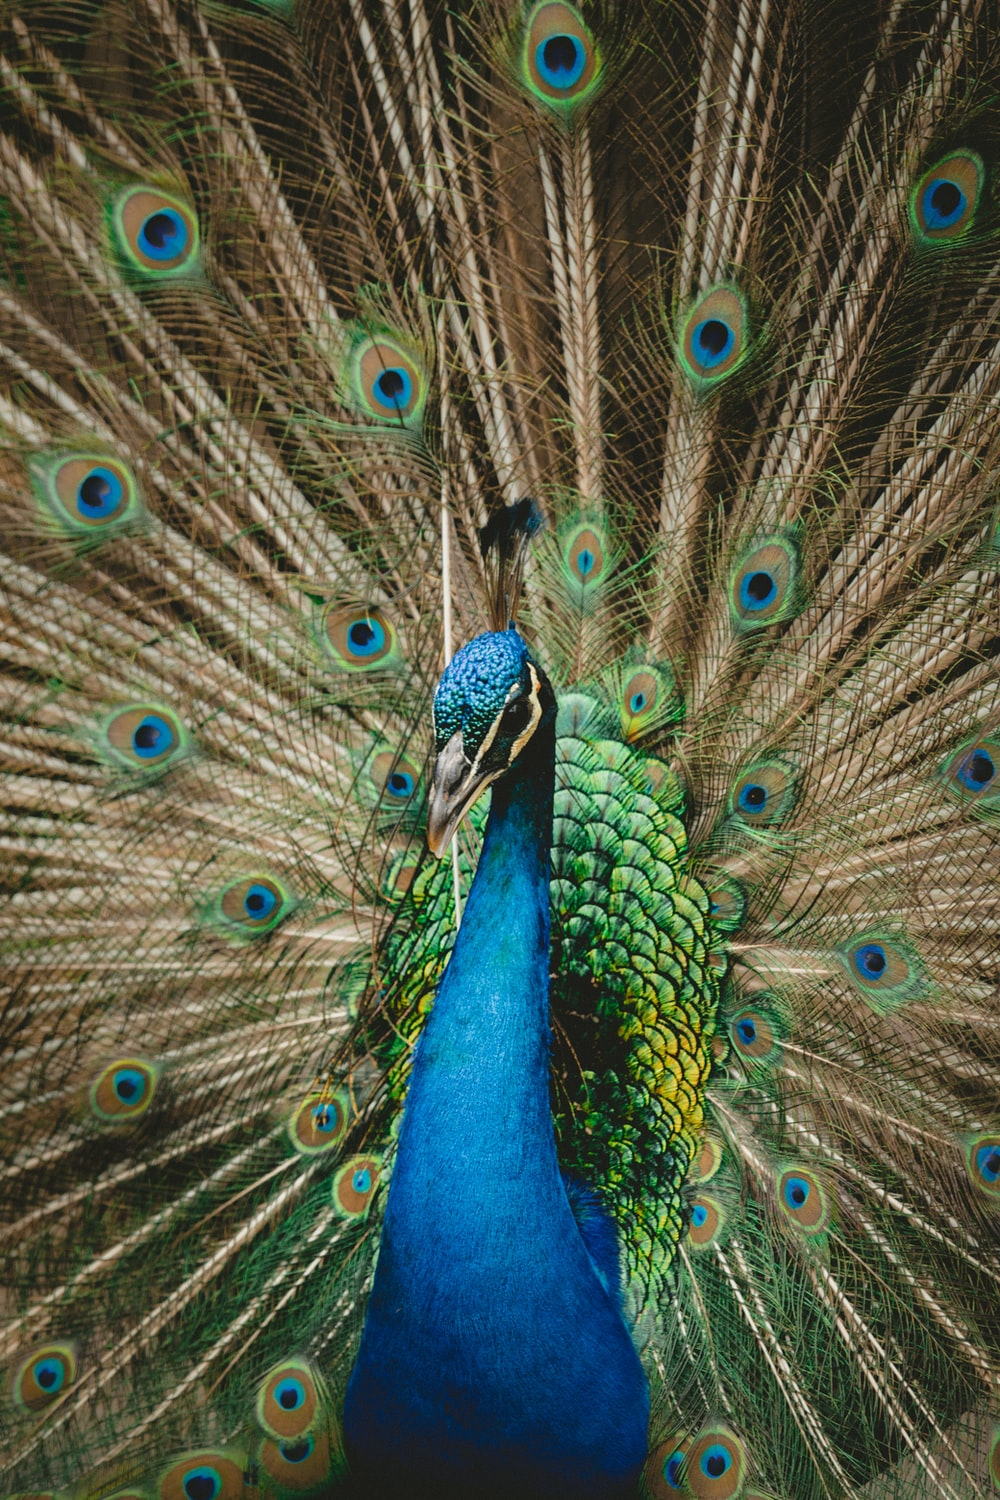 green and blue peacock spreading wings